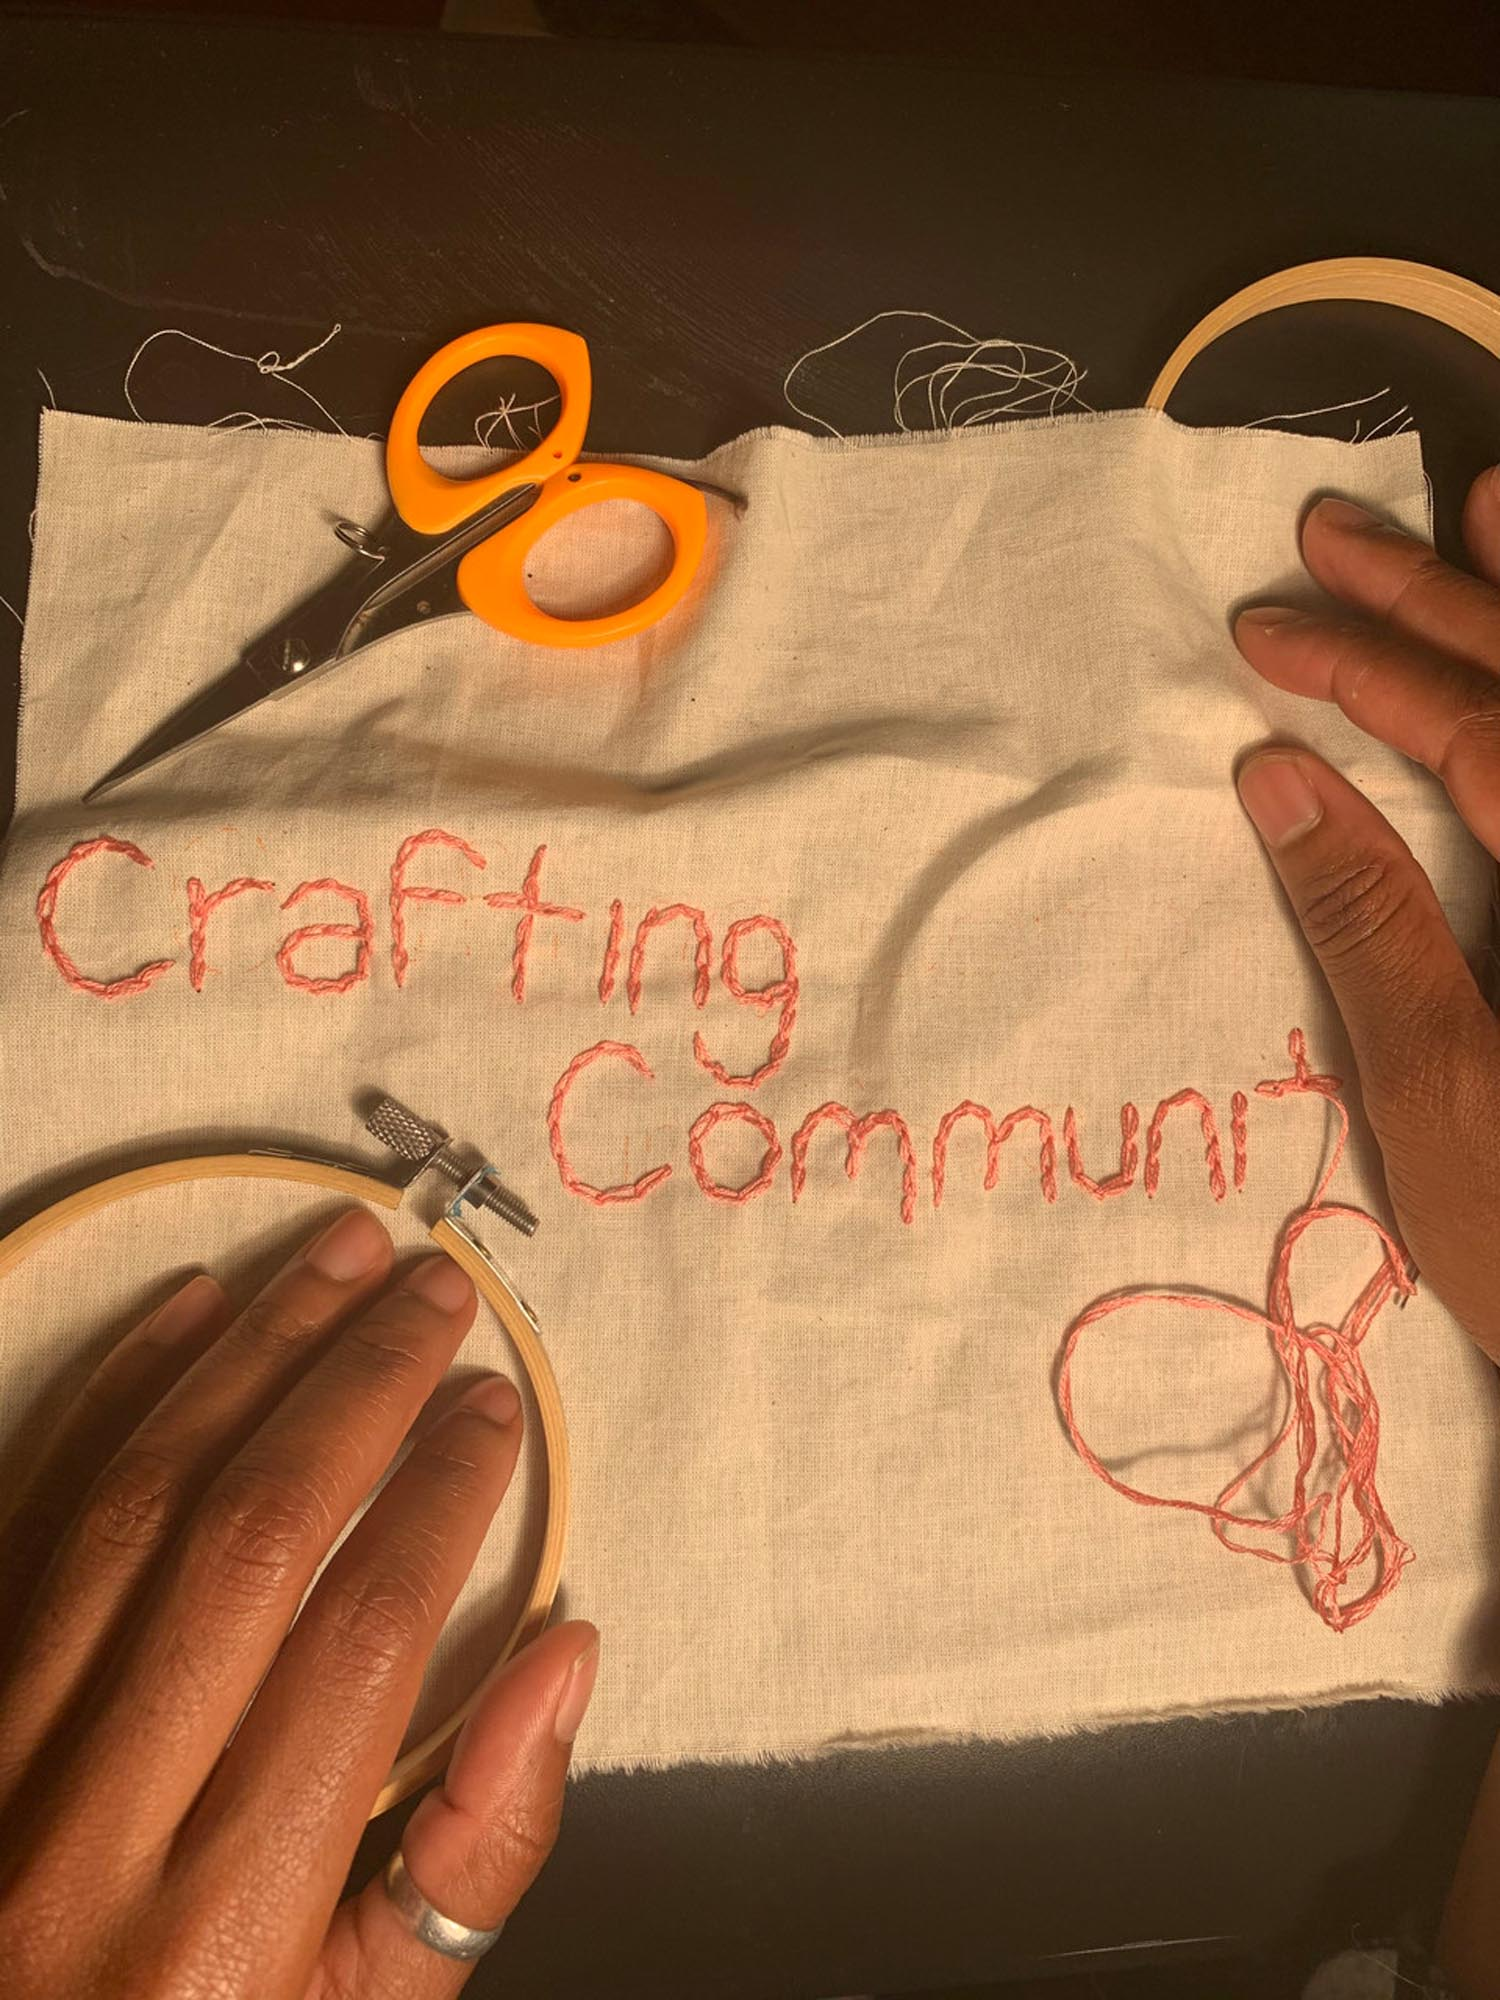 Brown hand rest atop a muslin square after having chain stitches the words Crafting Community into the fabric with pink thread. Orange handled scissors lie on the table nearby.